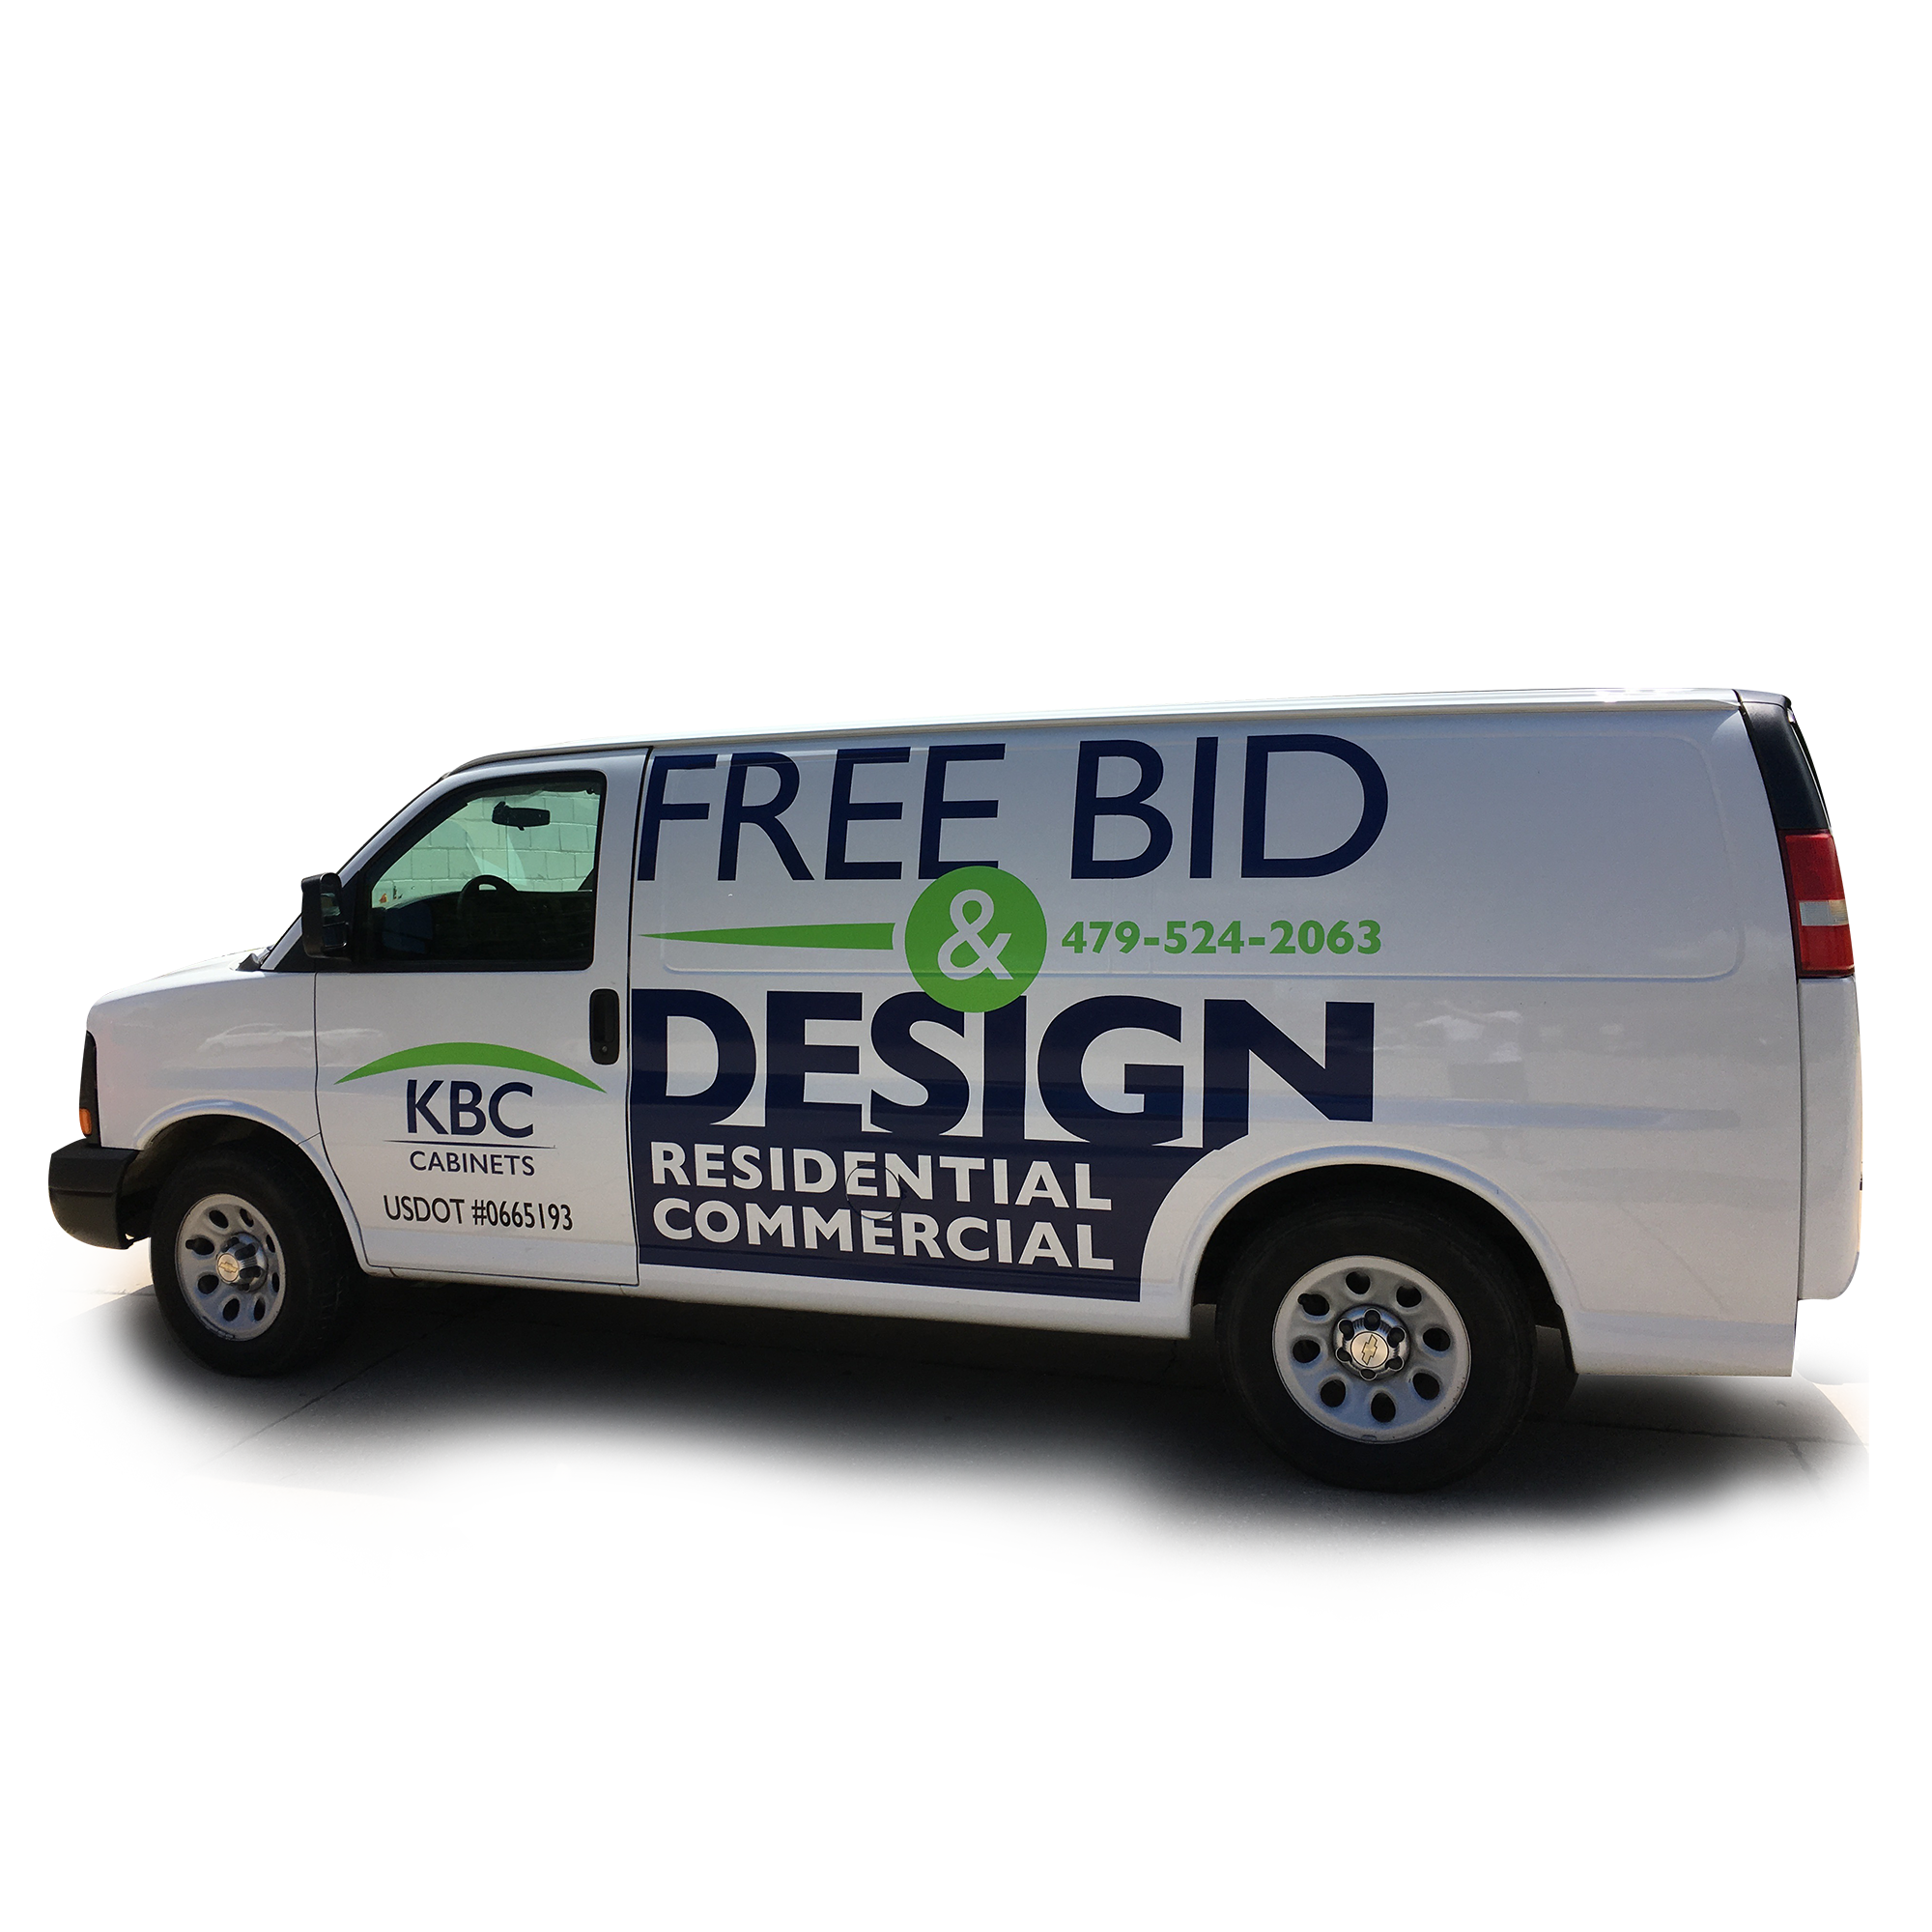 A simpler cheaper version of the full body vehicle wrap this full color print covers portions of the vehicle body allowing for strategic placement of